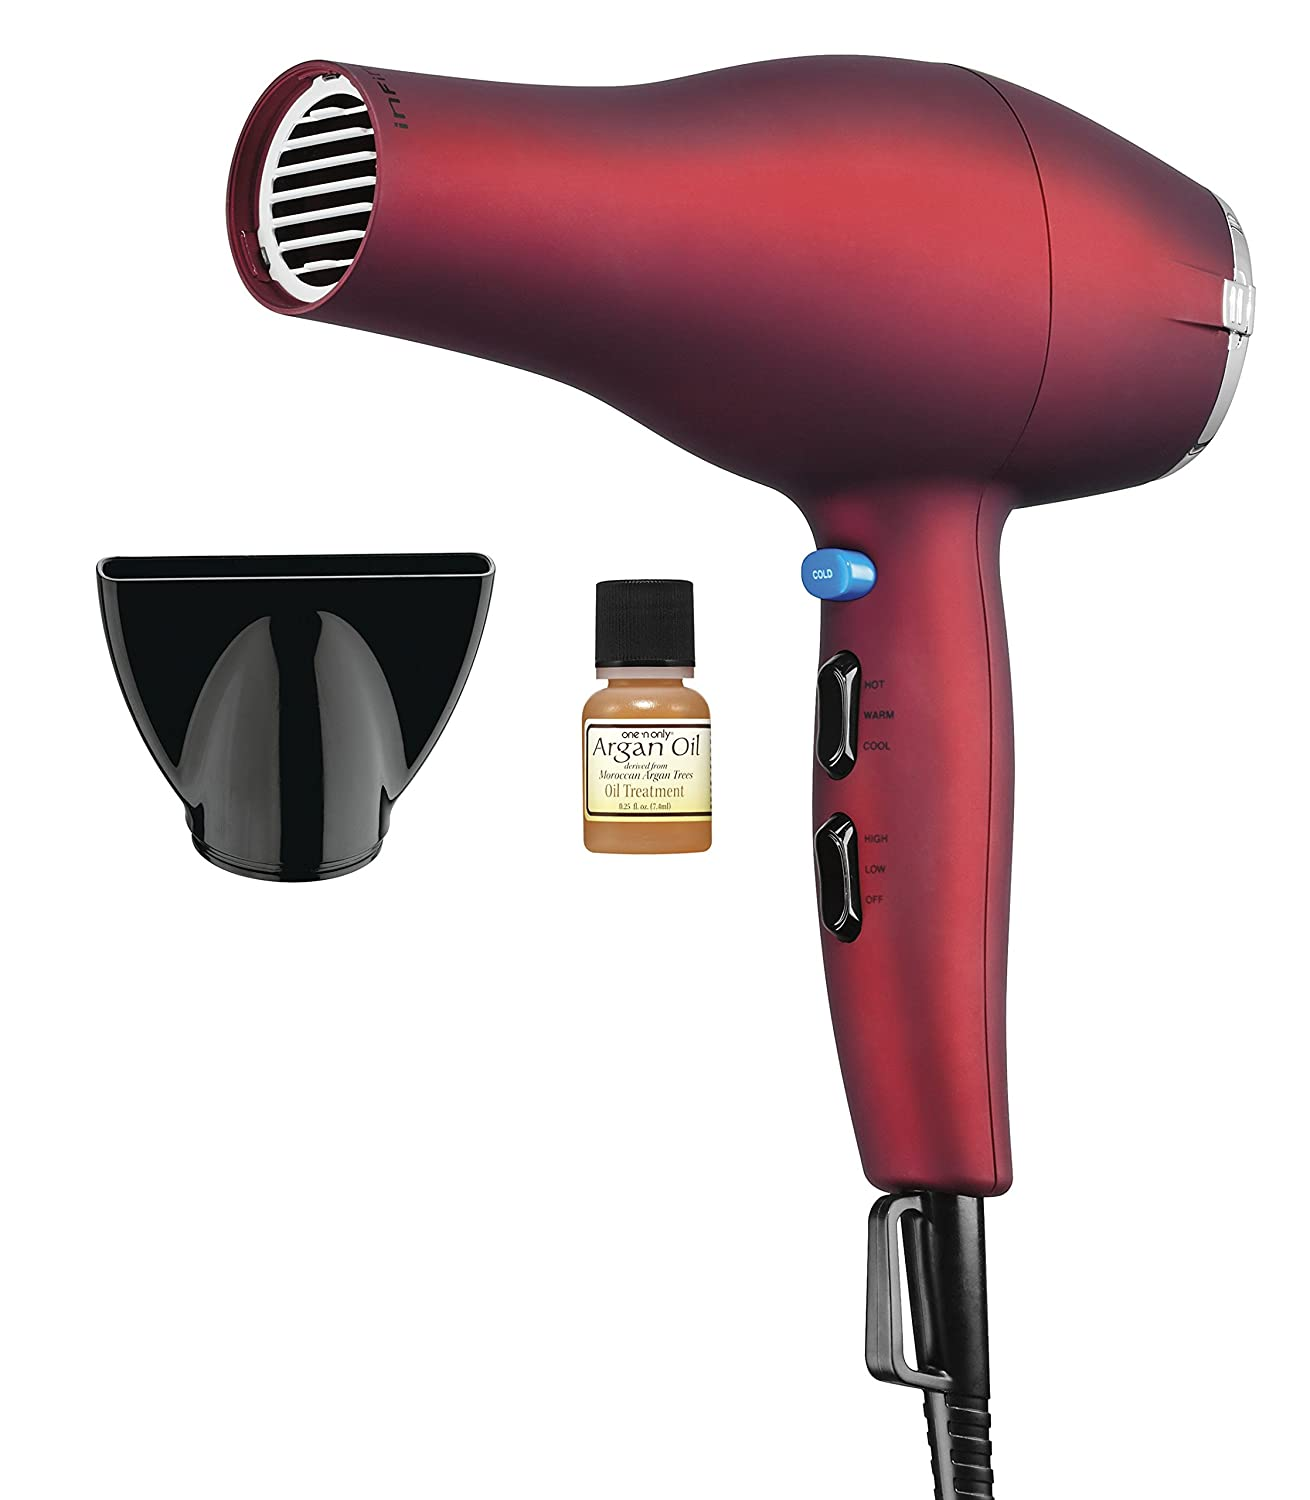 pro product by upc for hair infinity hei infiniti performance com dryer upcitemdb image salon conair wid